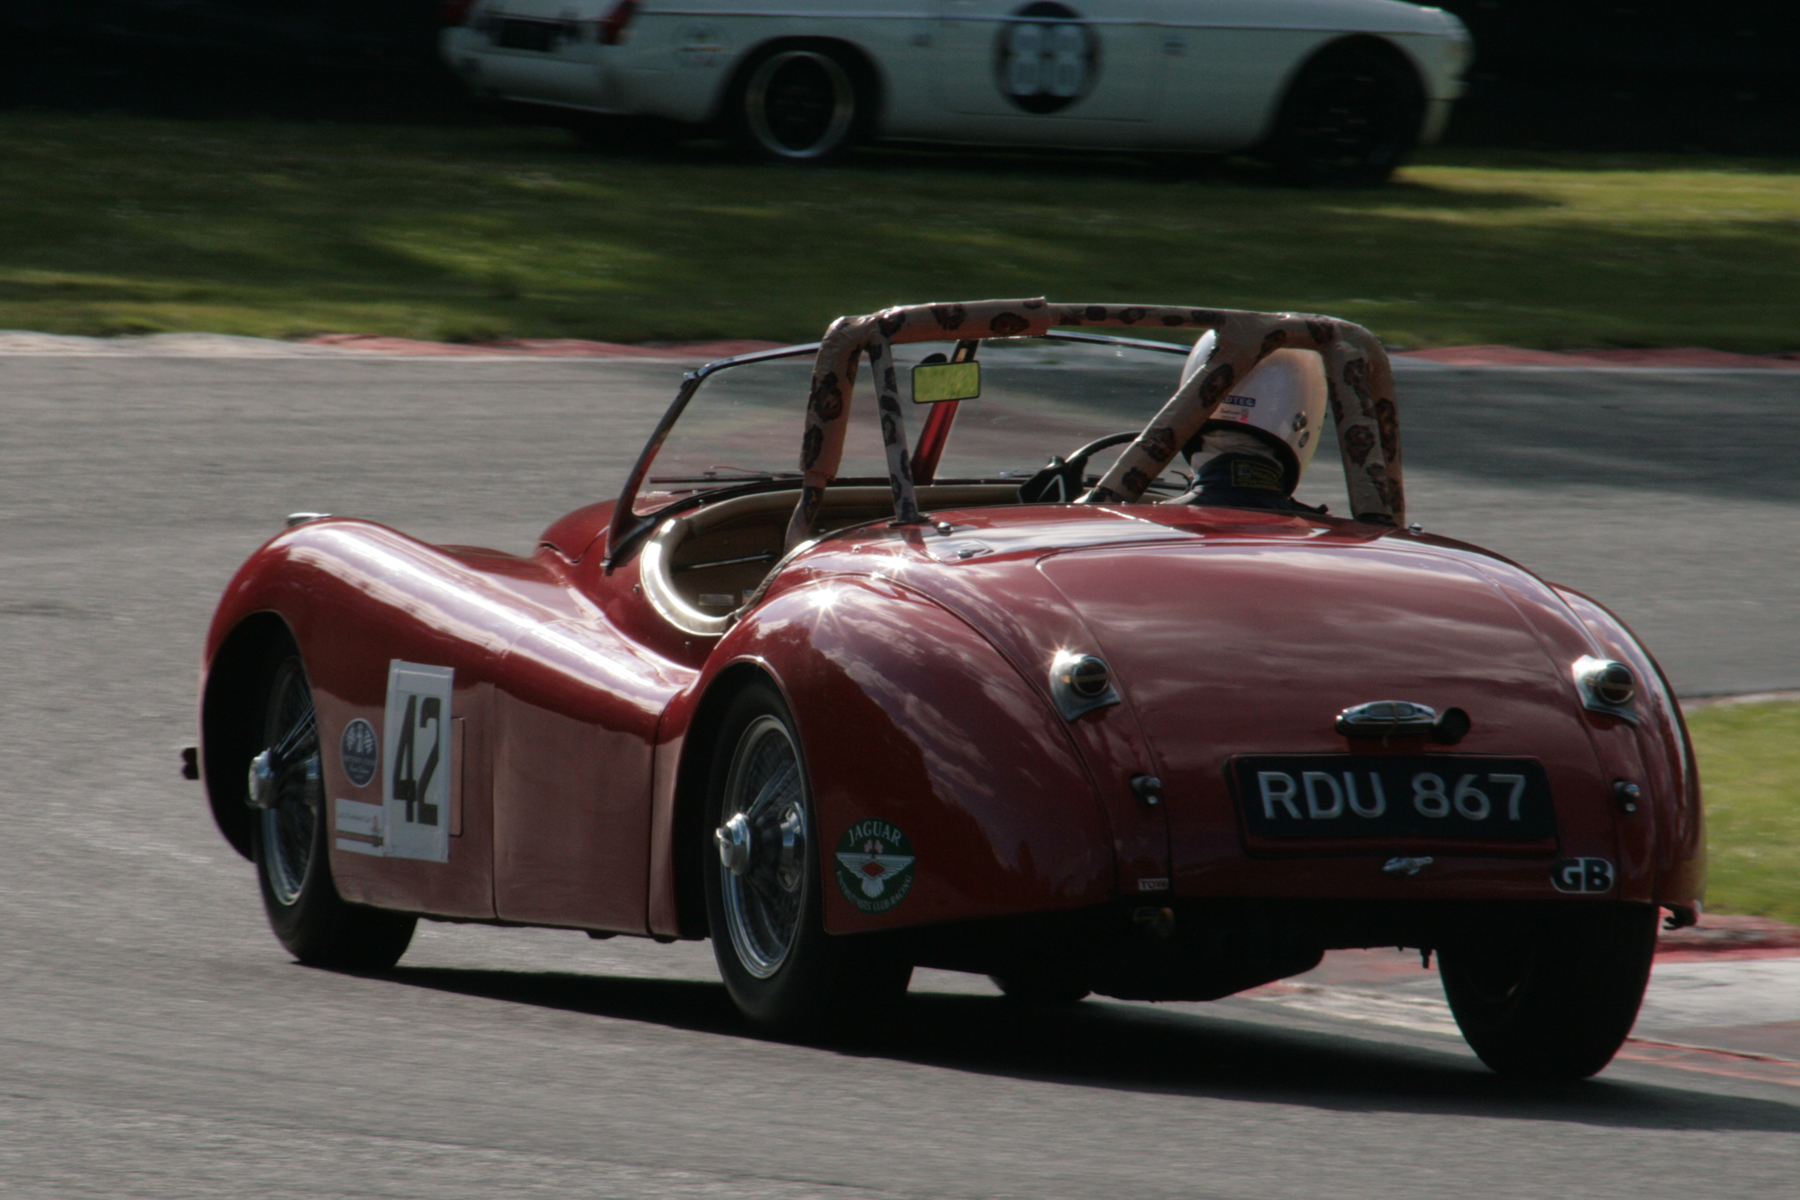 Geoff Ottley in his Jaguar XK120